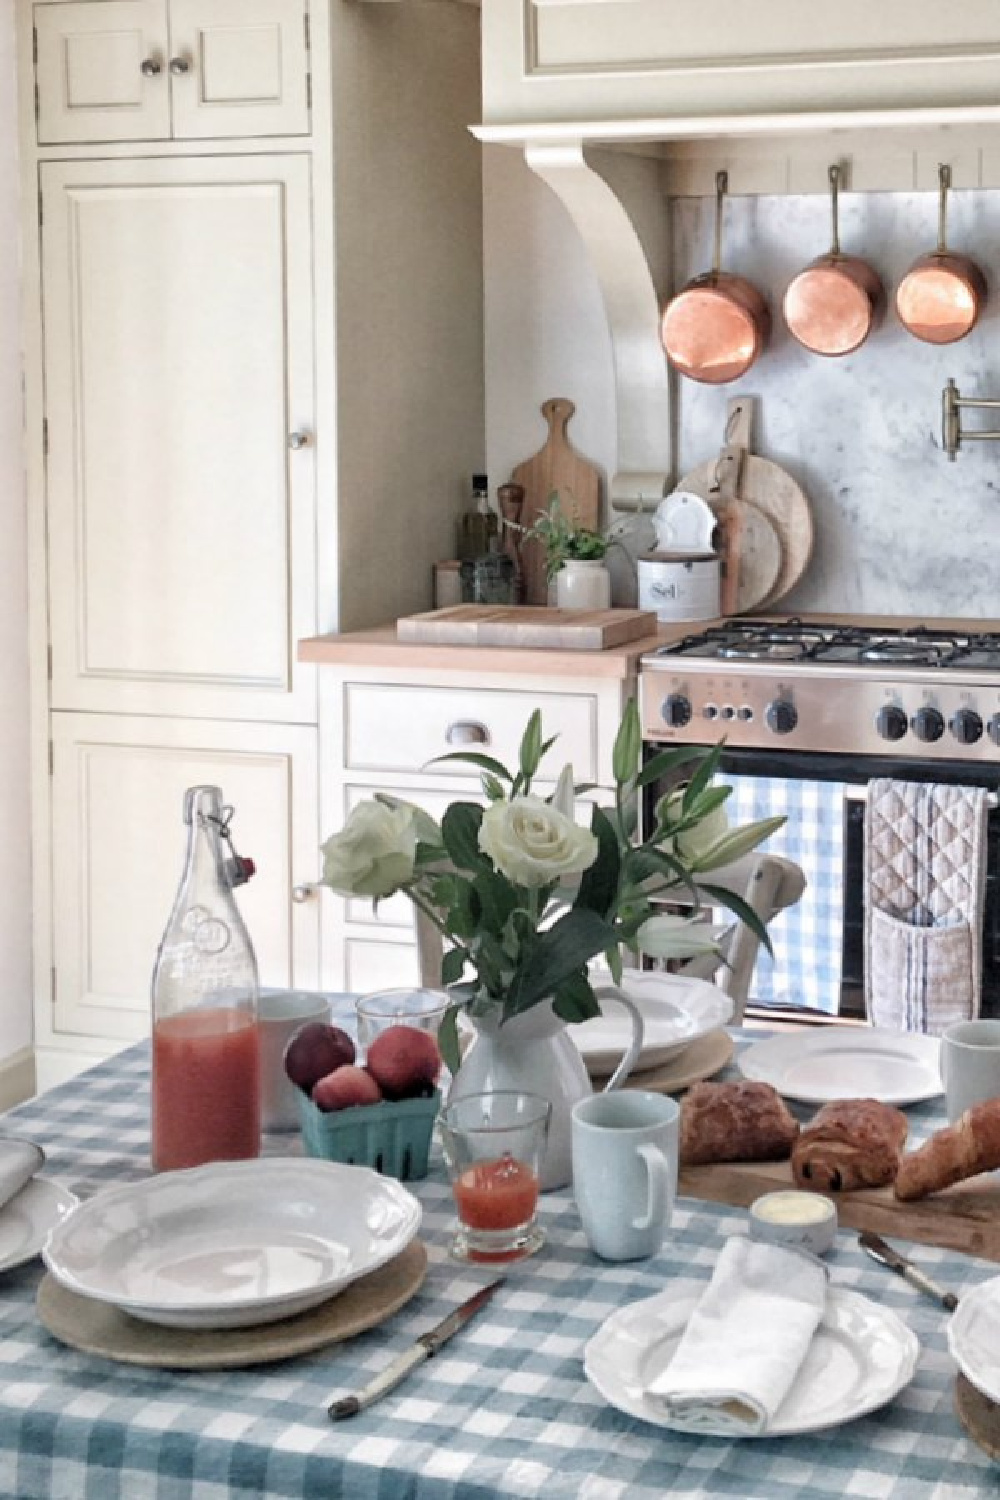 This charming kitchen near Bordeaux is rustic and romantic thanks to French homewares from Vivi et Margot. #frenchkitchen #frenchfarmhouse #gingham #tablecloth #puttycabinets #kitchendesign #rusticdecor